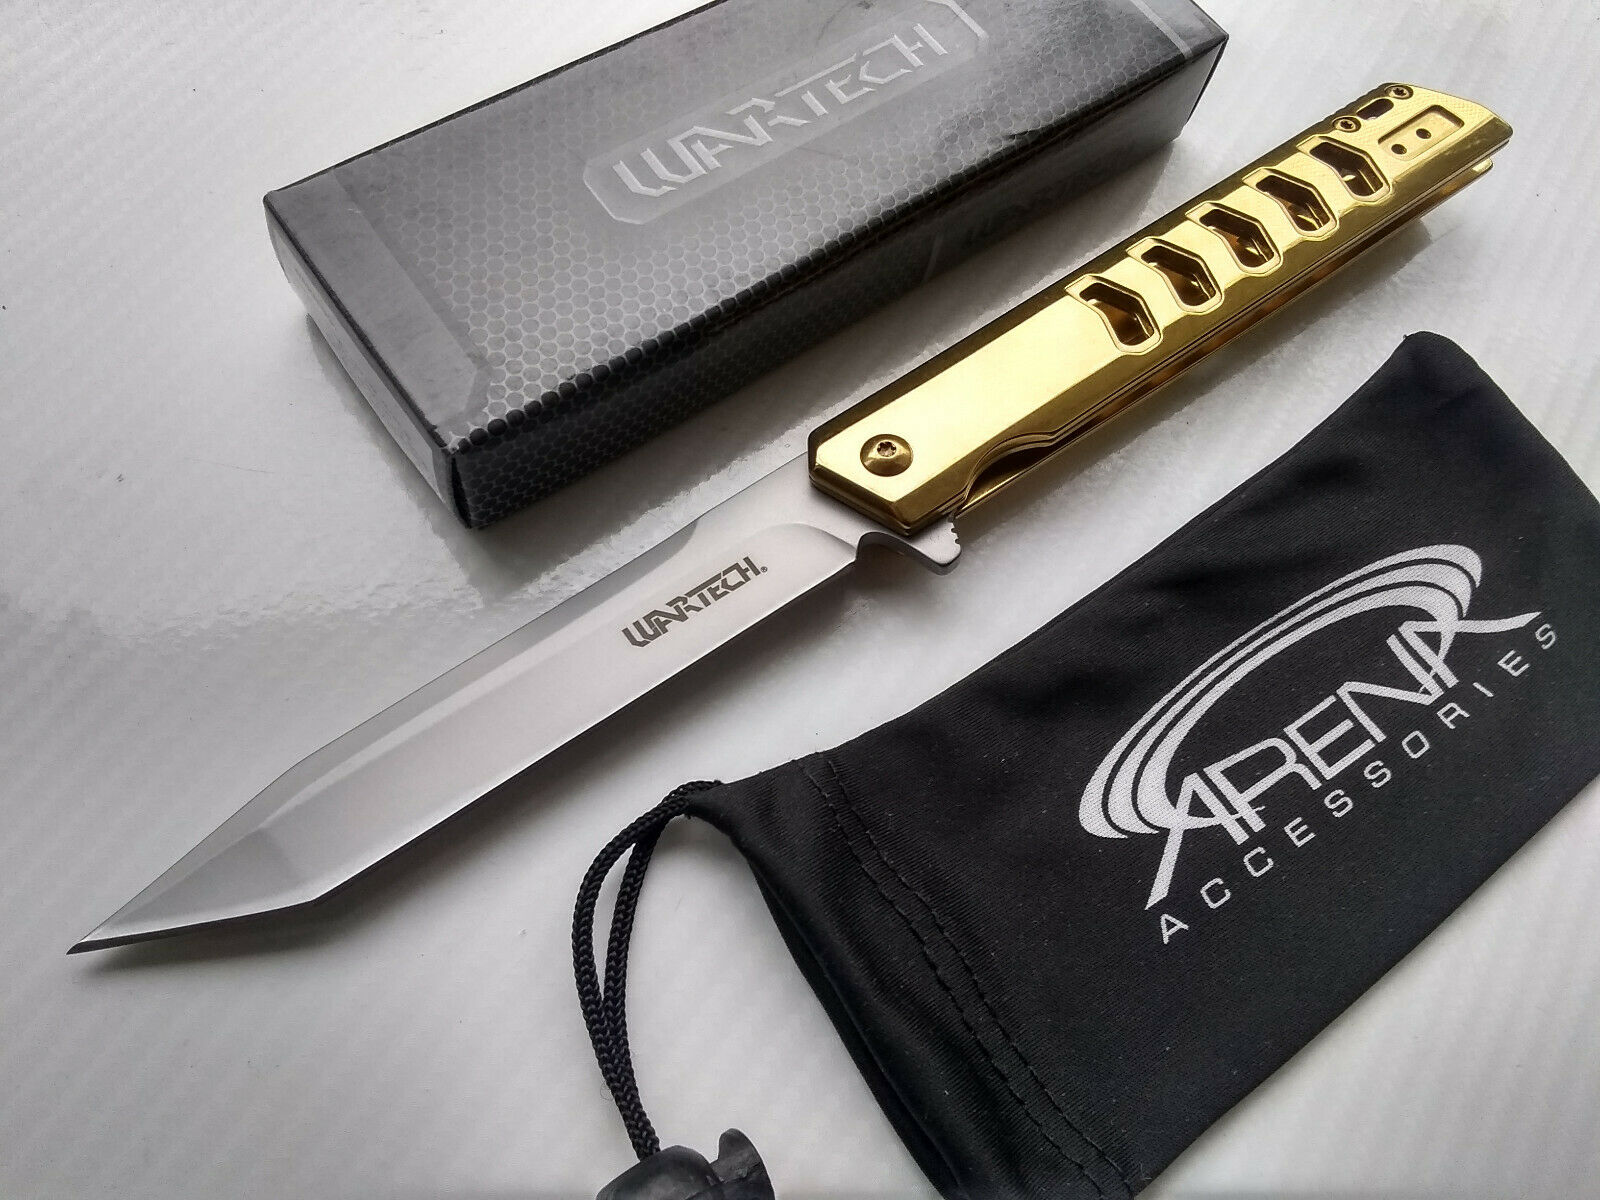 Wartech Slim Design Mirrored Gold Ti Tanto Pocket Knife Spring Assisted Frame Lock Flipper EDC